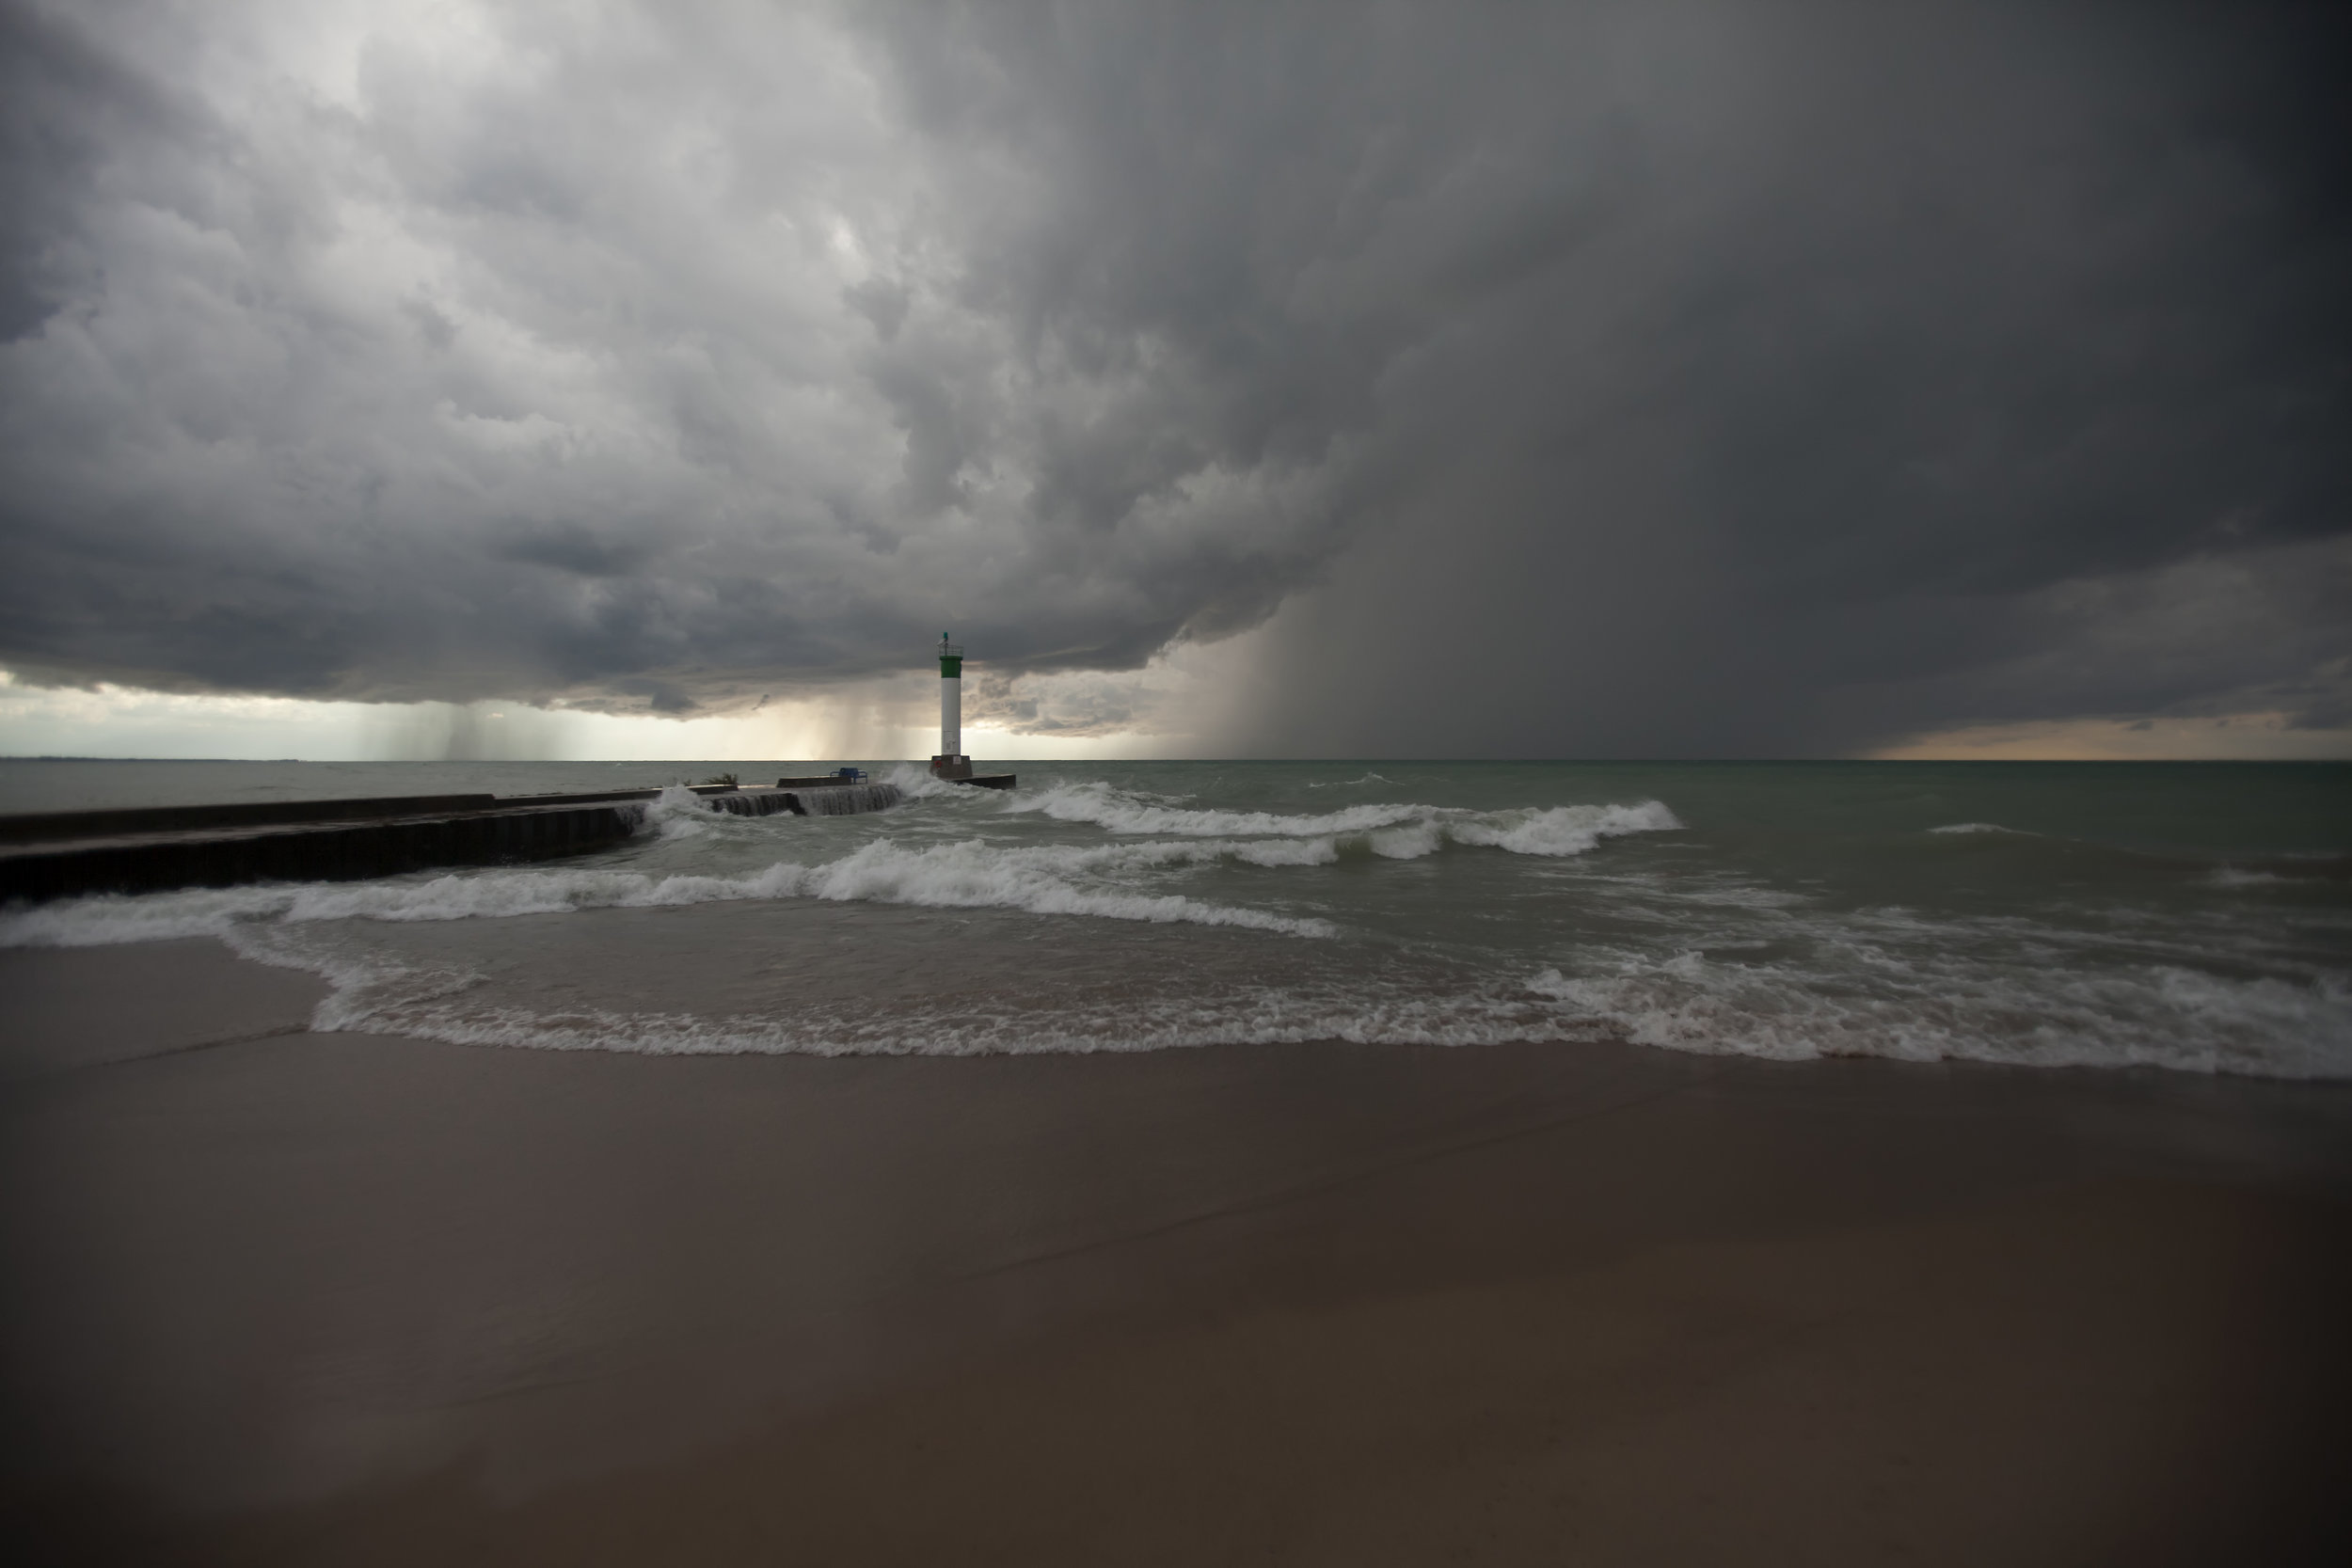 Grand Bend Storm - Across the Blue Planet